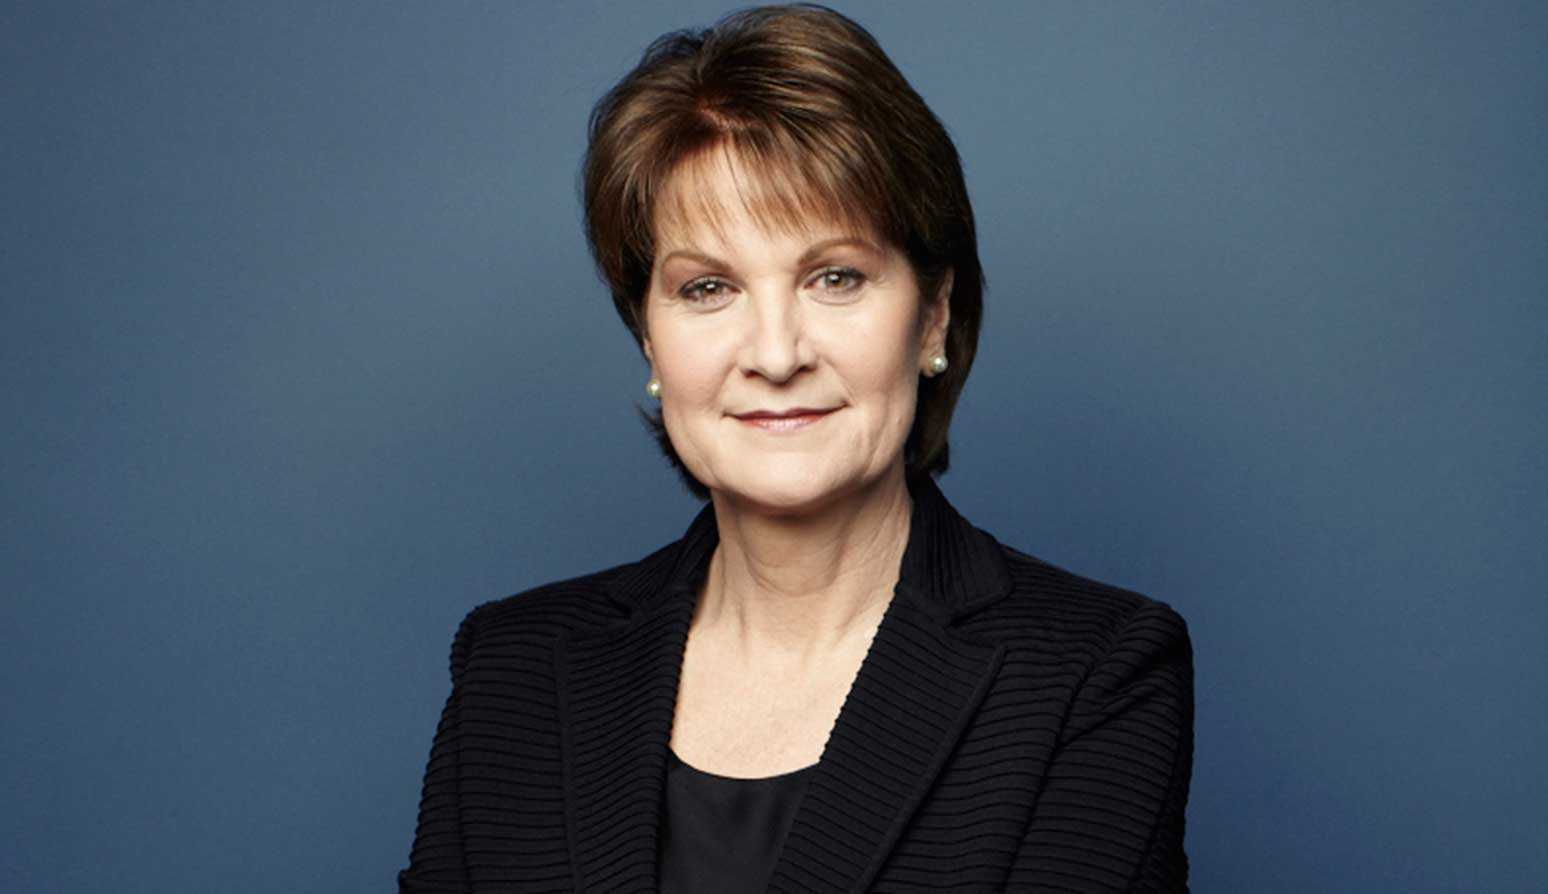 Marillyn Hewson, CEO, chairman and president of Lockheed Martin